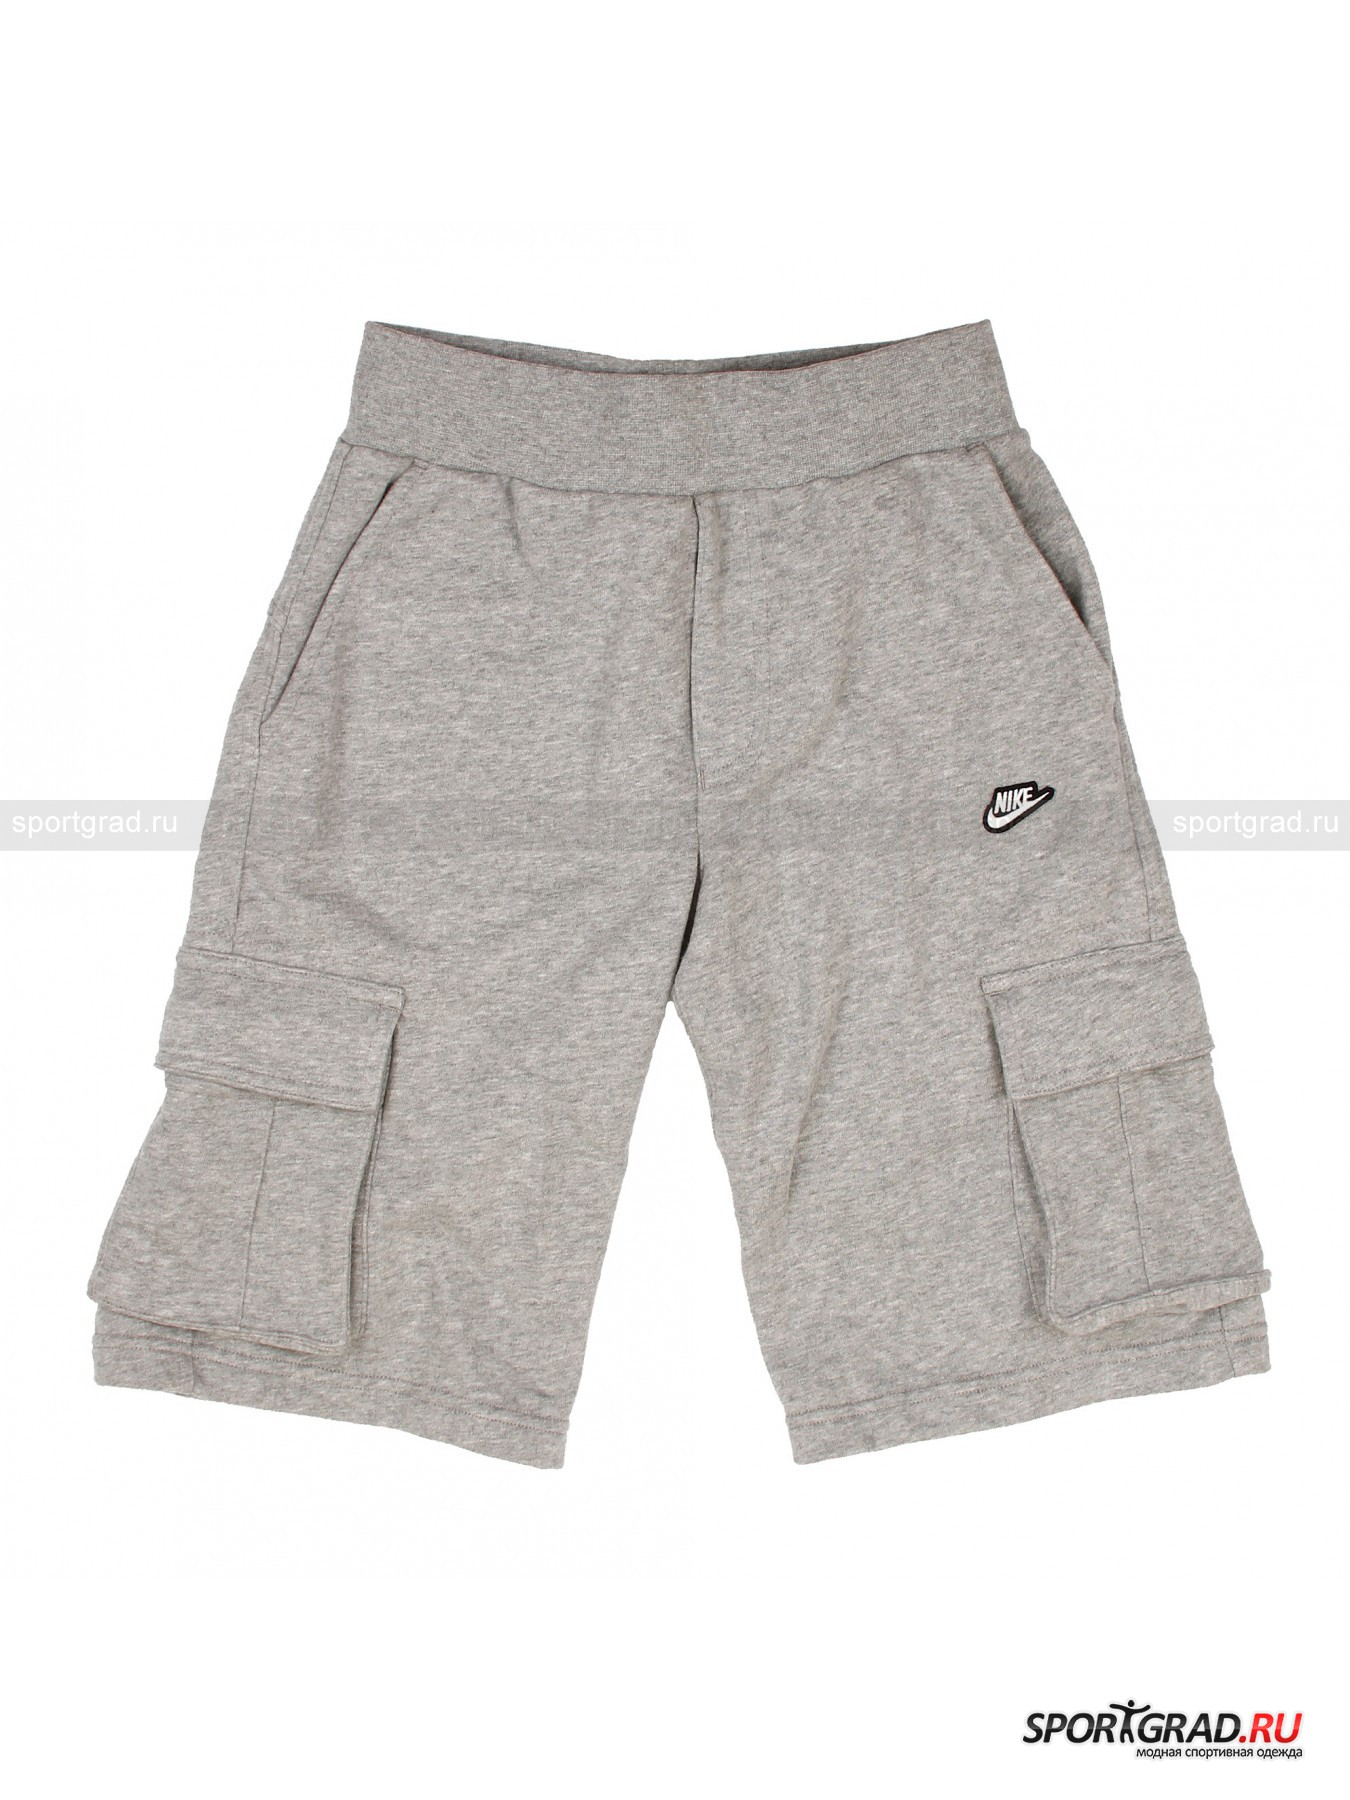 Шорты дет Street + Fleece Short NIKE